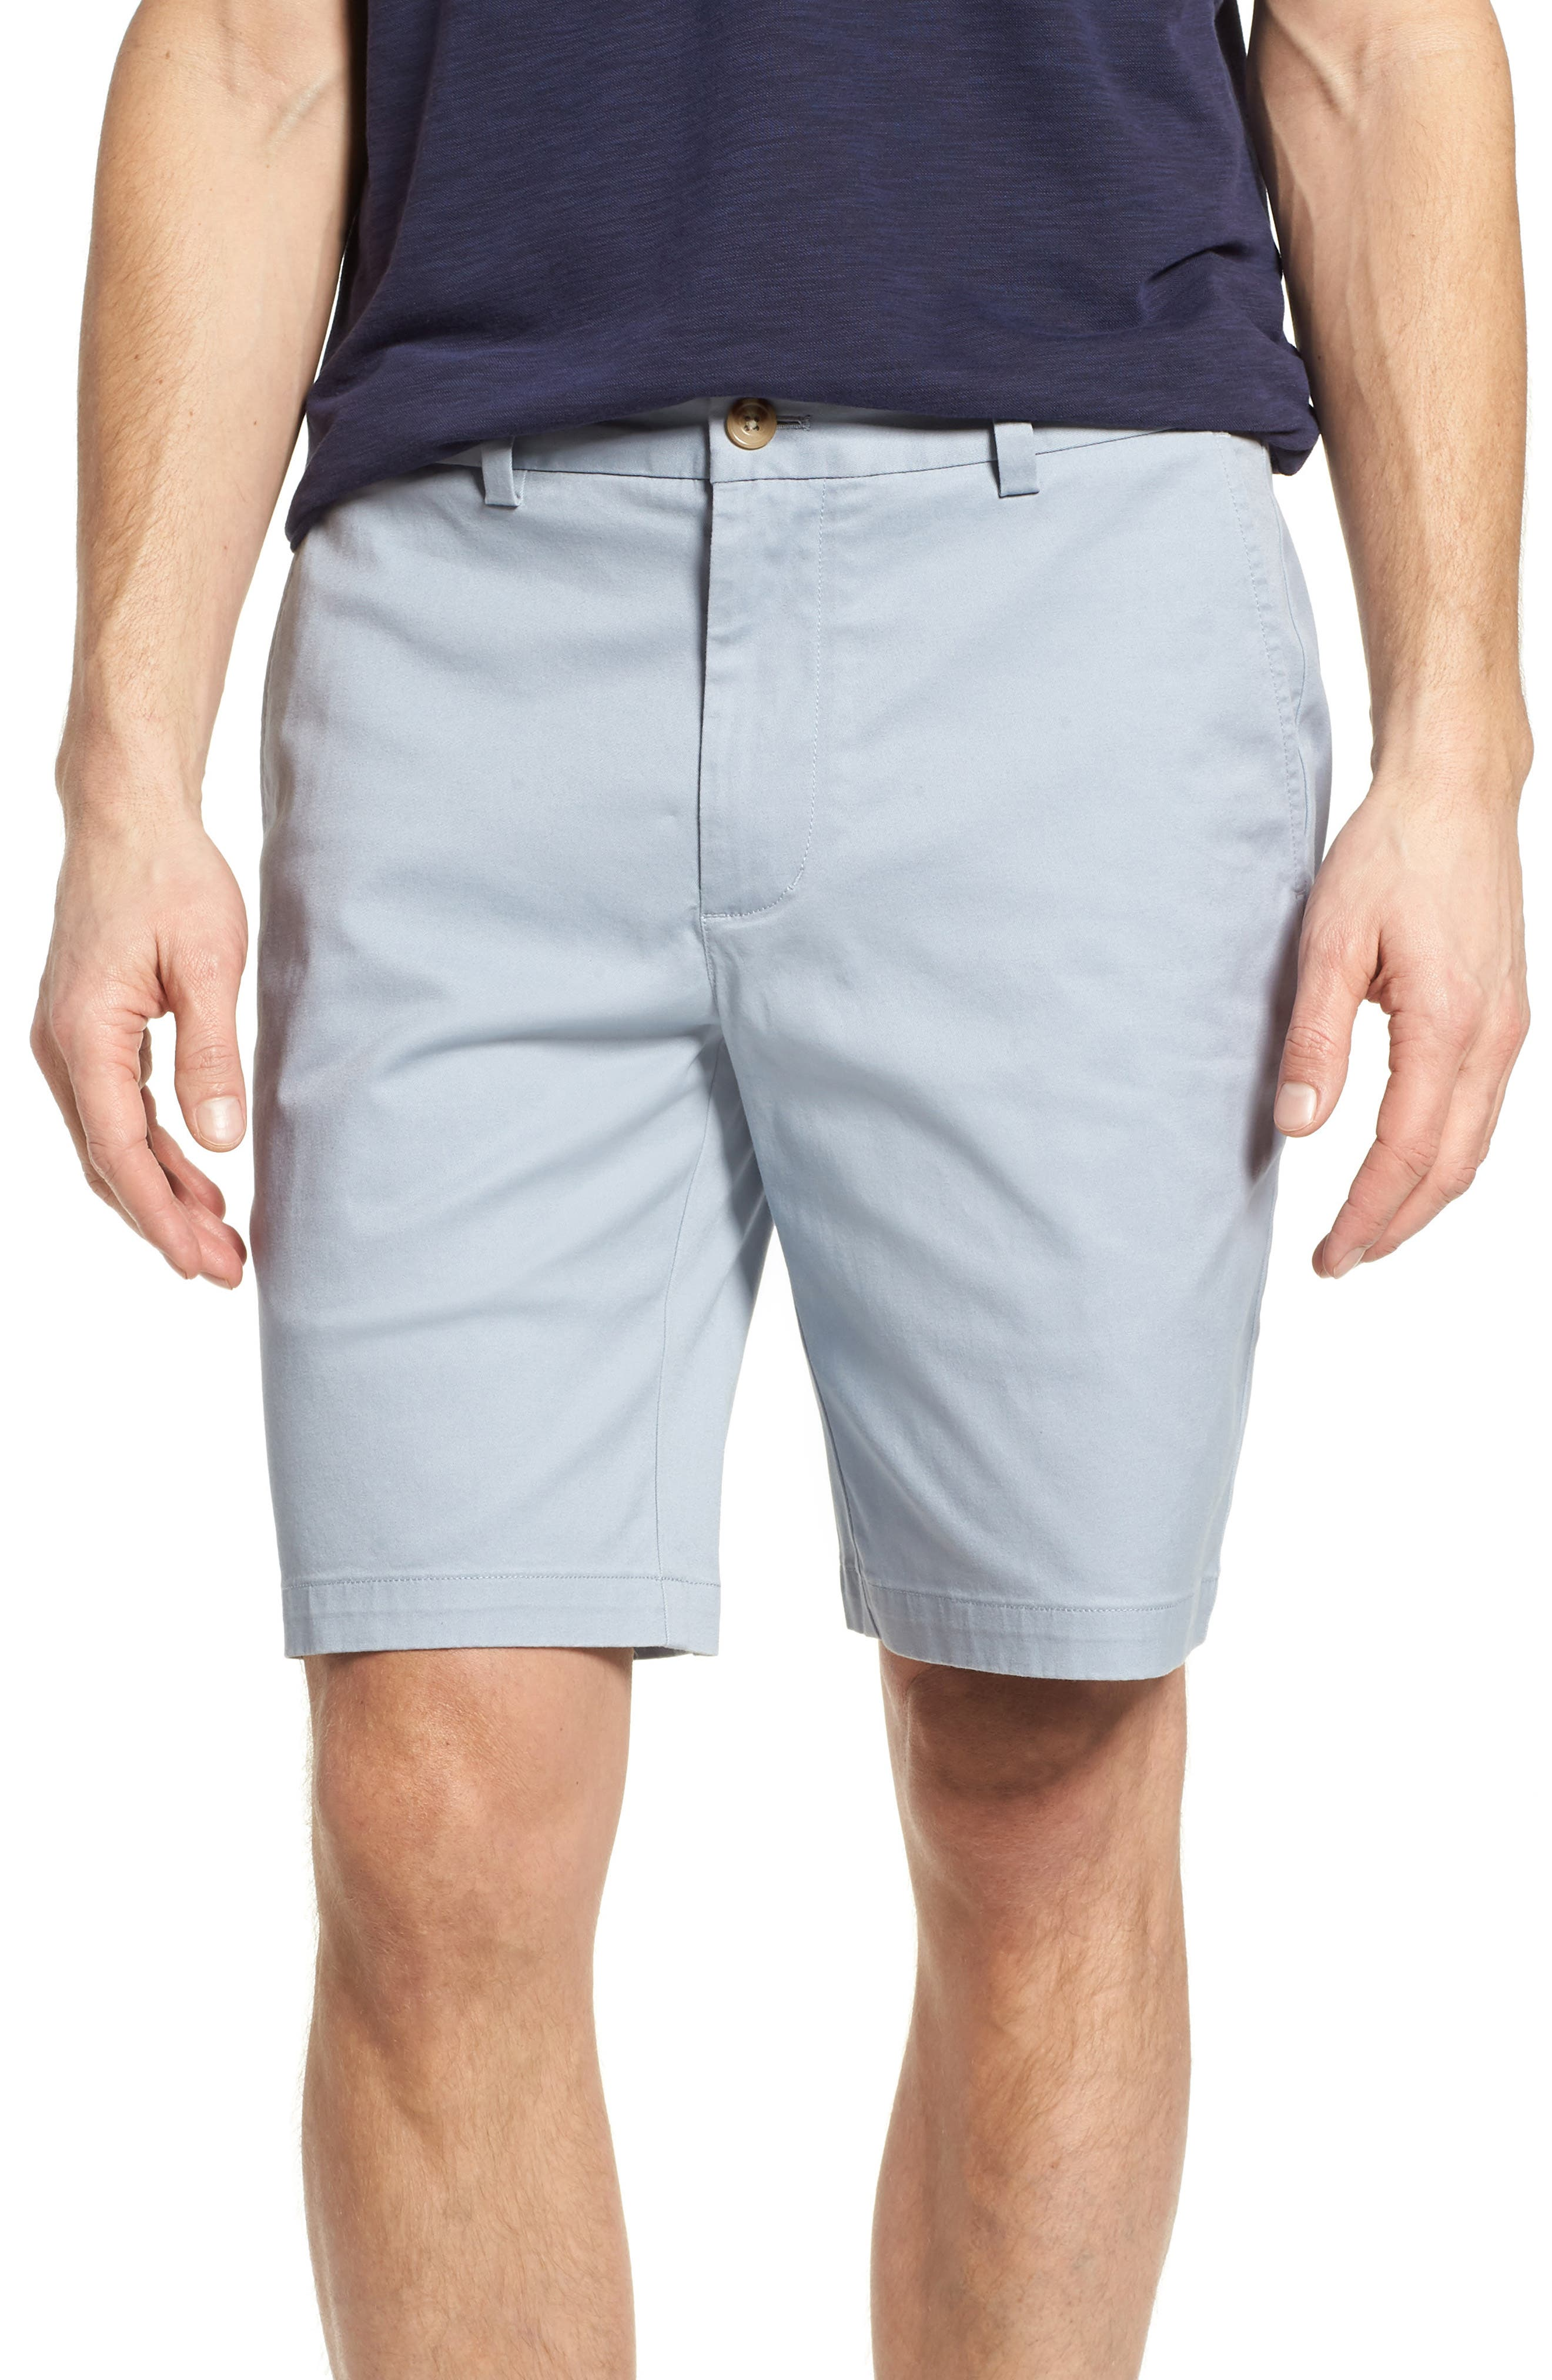 9 Inch Stretch Breaker Shorts,                             Main thumbnail 1, color,                             034